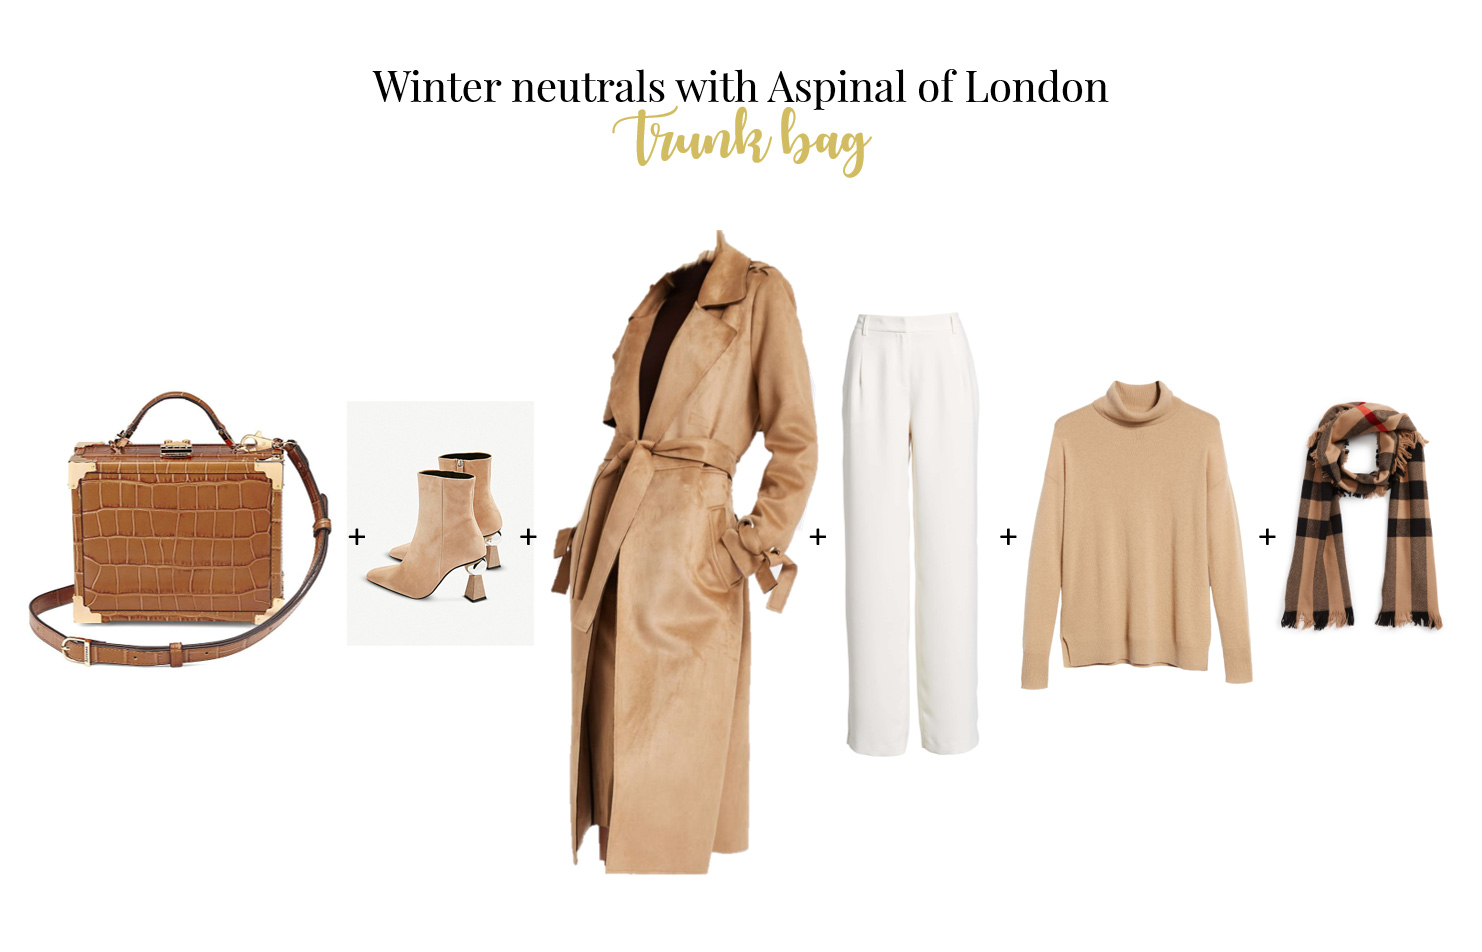 How to wear trunk bag for work Aspinal of London bag faux suede coat